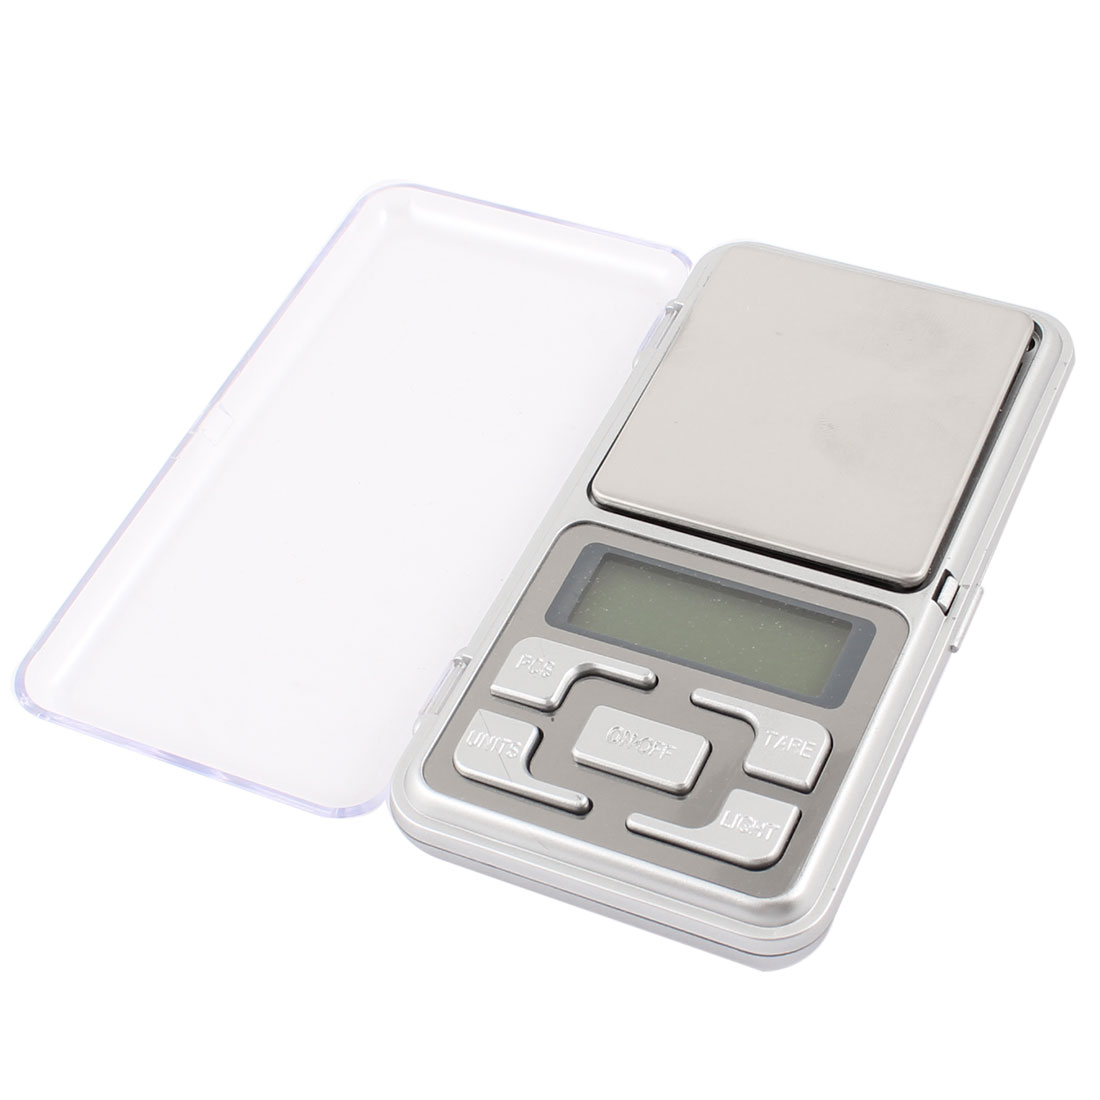 Clear Cover LCD Display 100g Capacity Digital Weight Pocket Scale Silver Tone